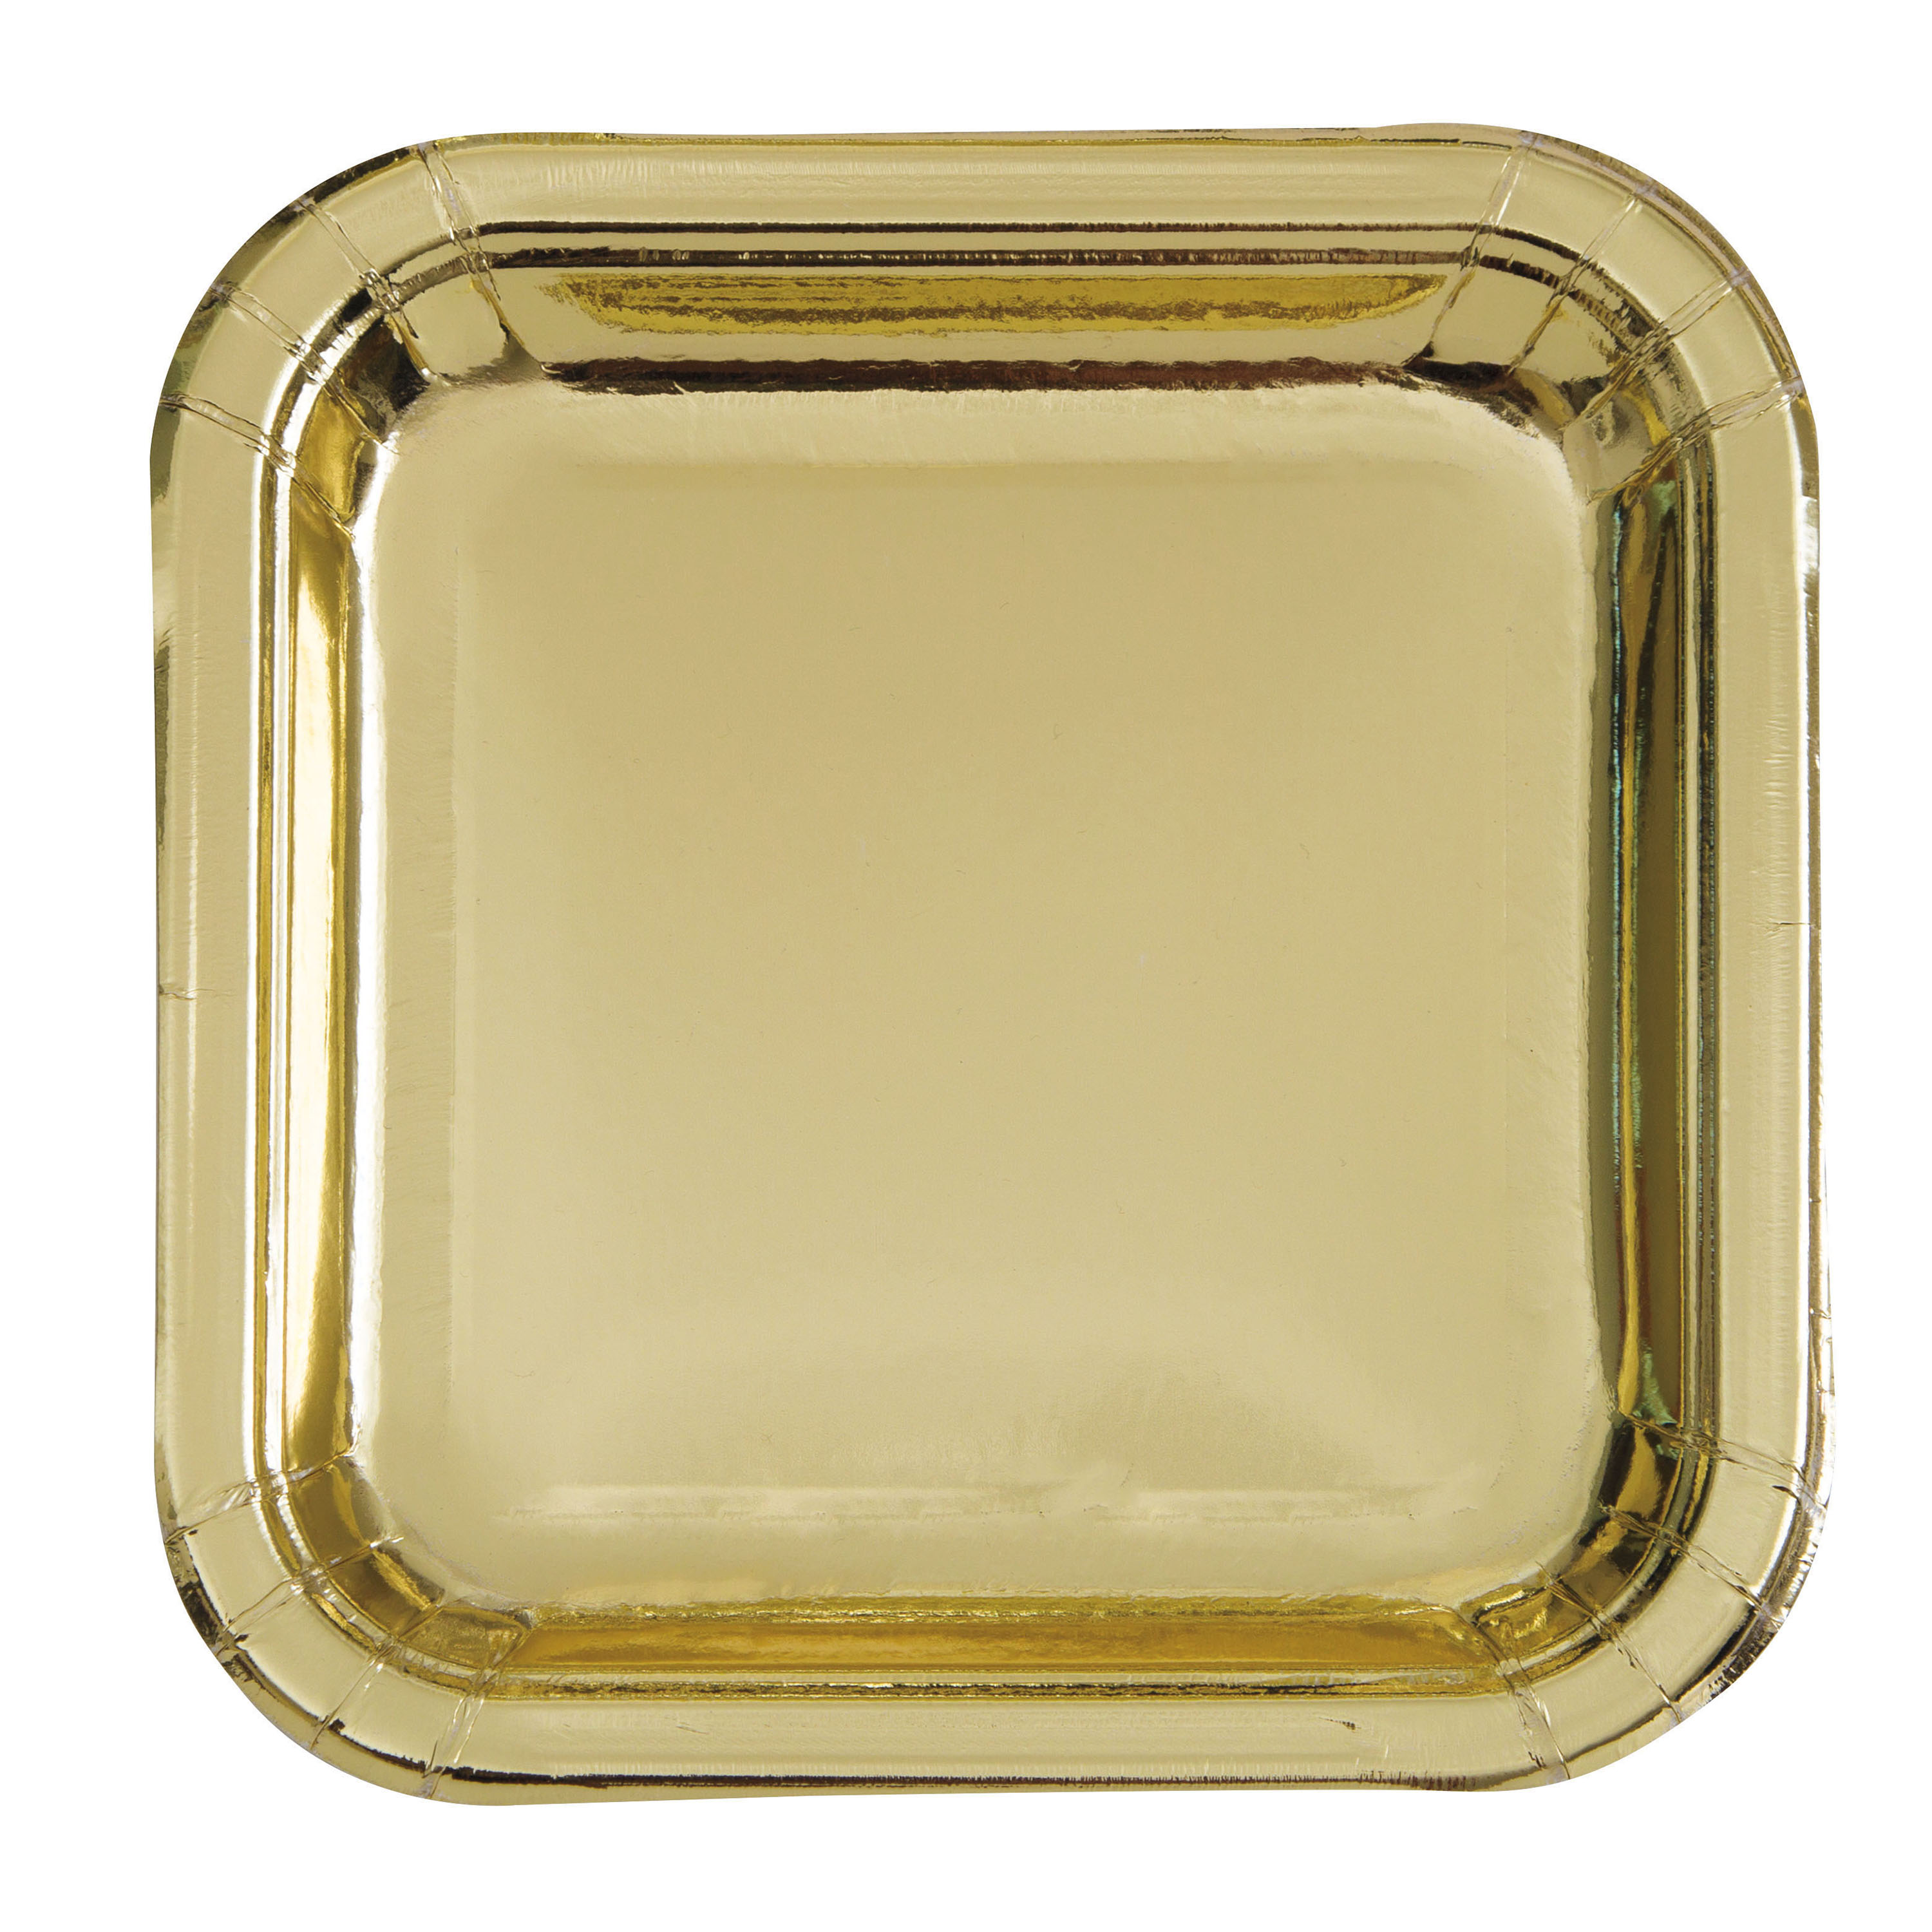 "9"" Square Foil Gold Party Plates, 8ct"